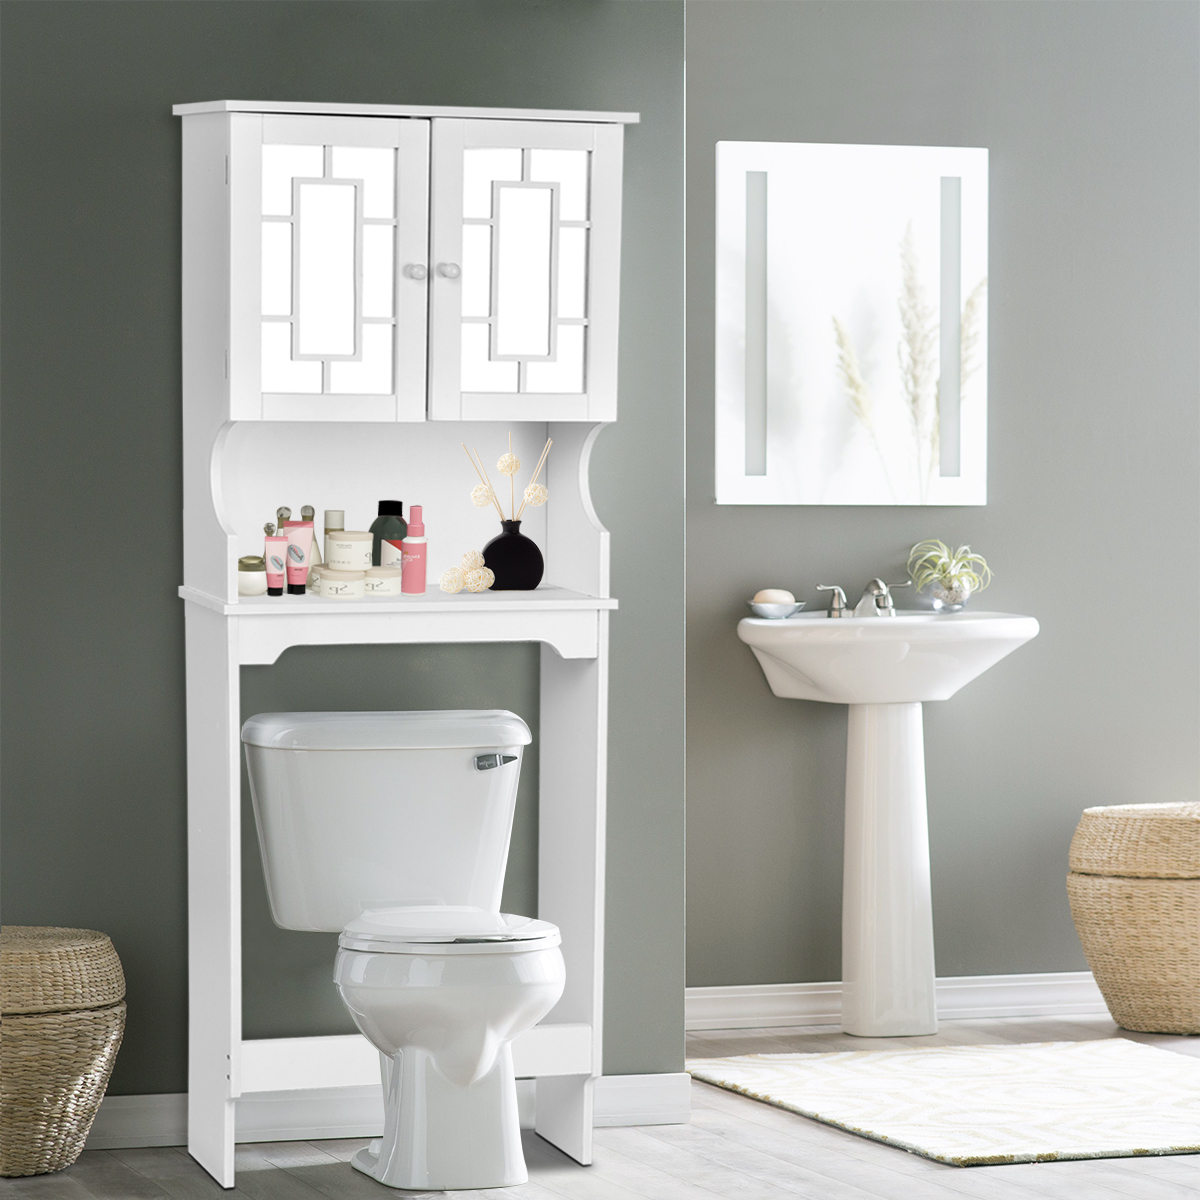 Beau Over The Toilet Storage